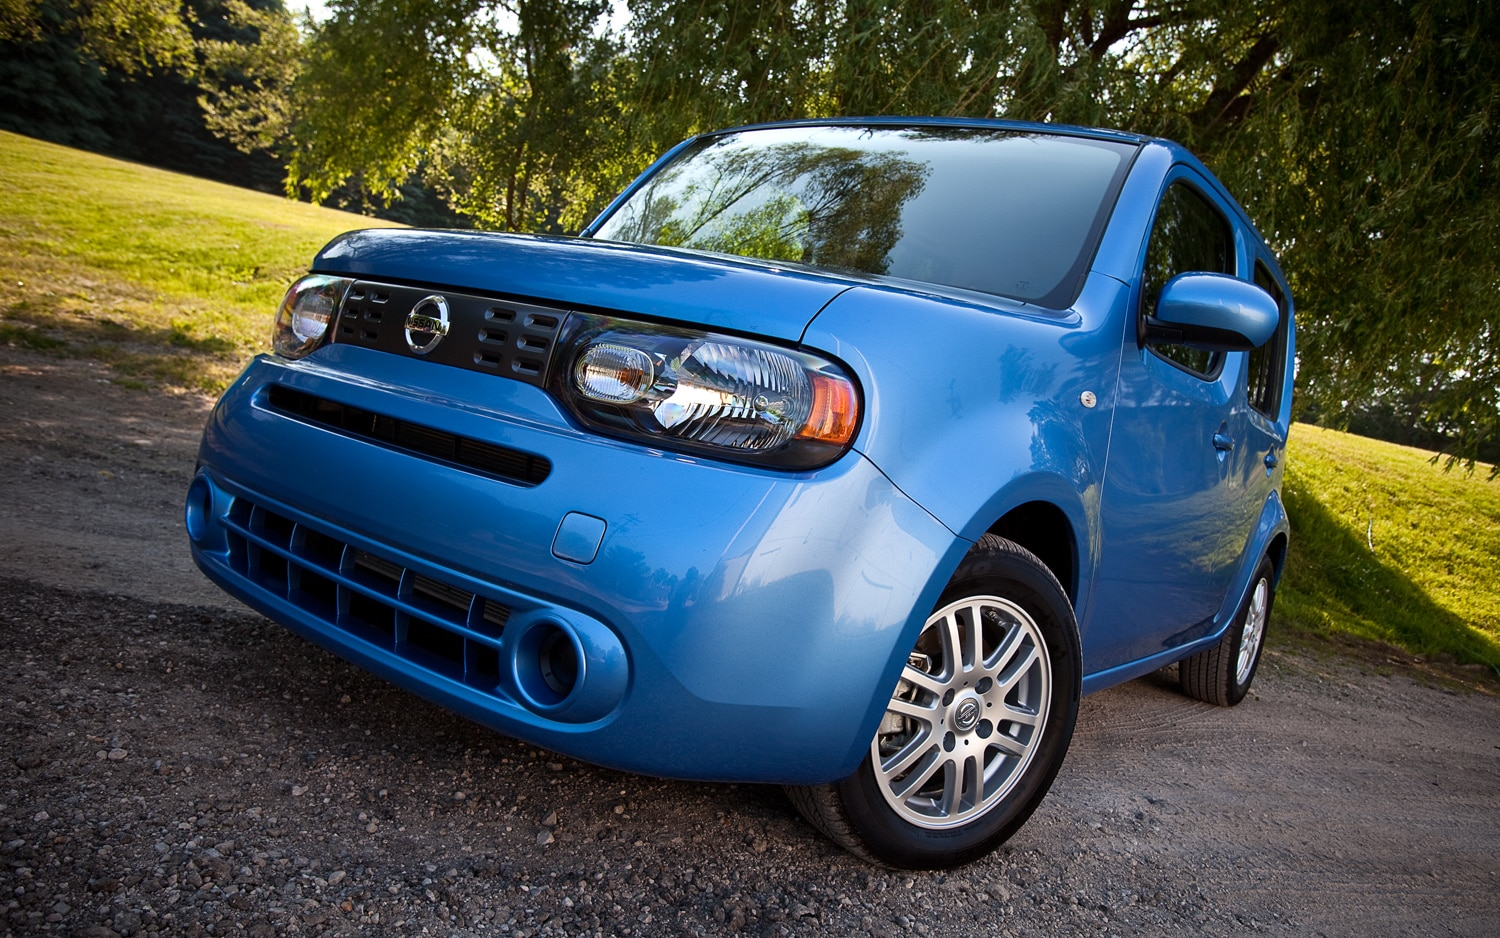 2012 Nissan Cube 1 8 S Front Left View 21